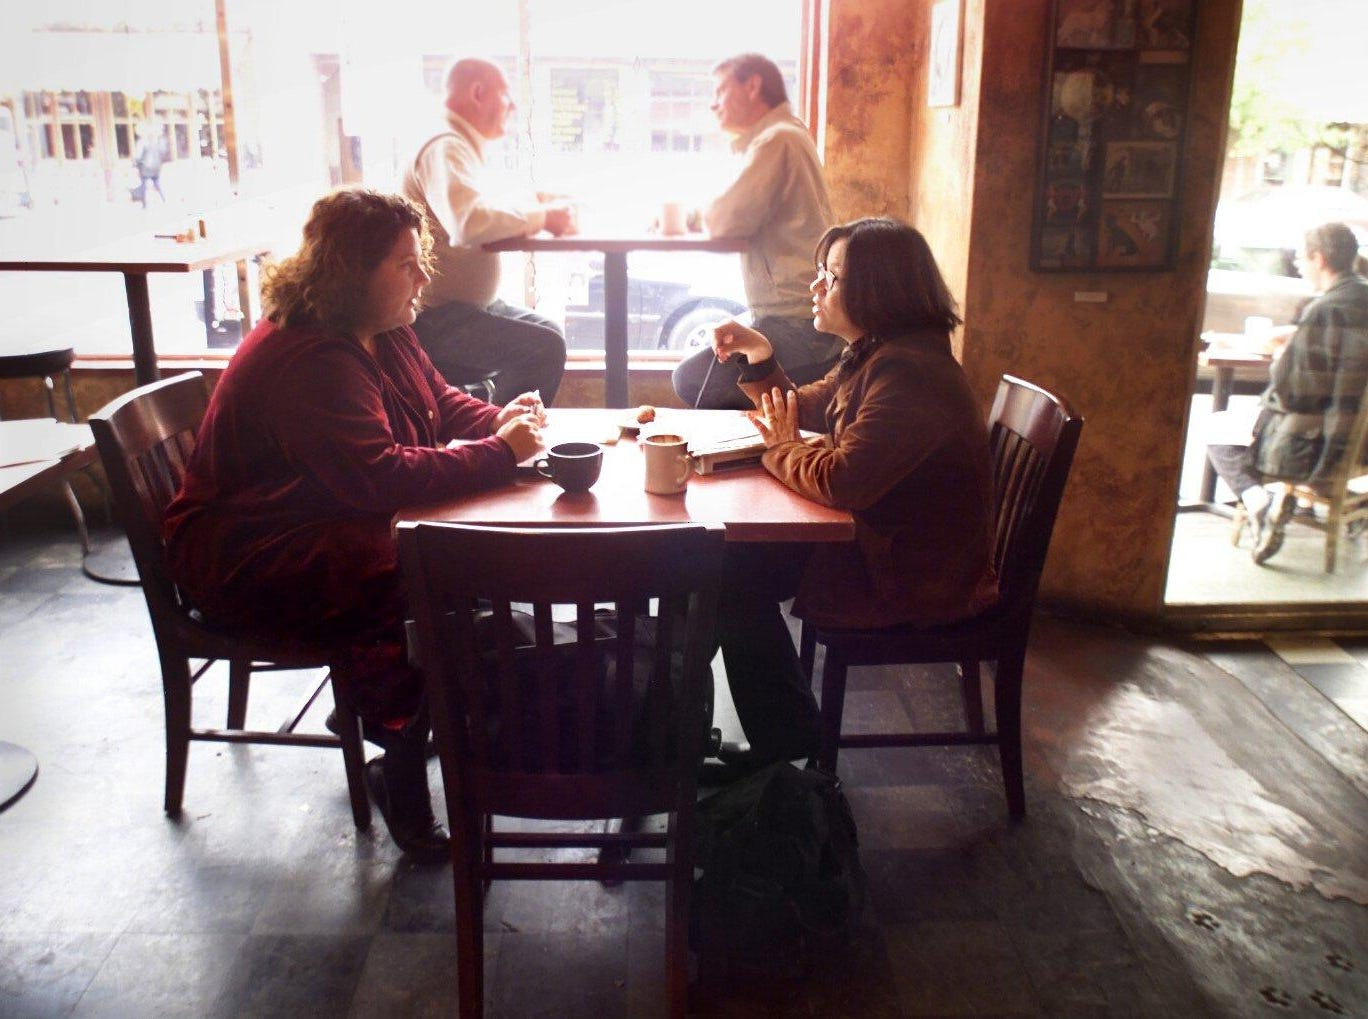 Mary Griffin, left, and Renata Soto combine coffee and work at Fido's in Hillsboro Village as they plan their Spanish language radio program Nov. 24, 2000.